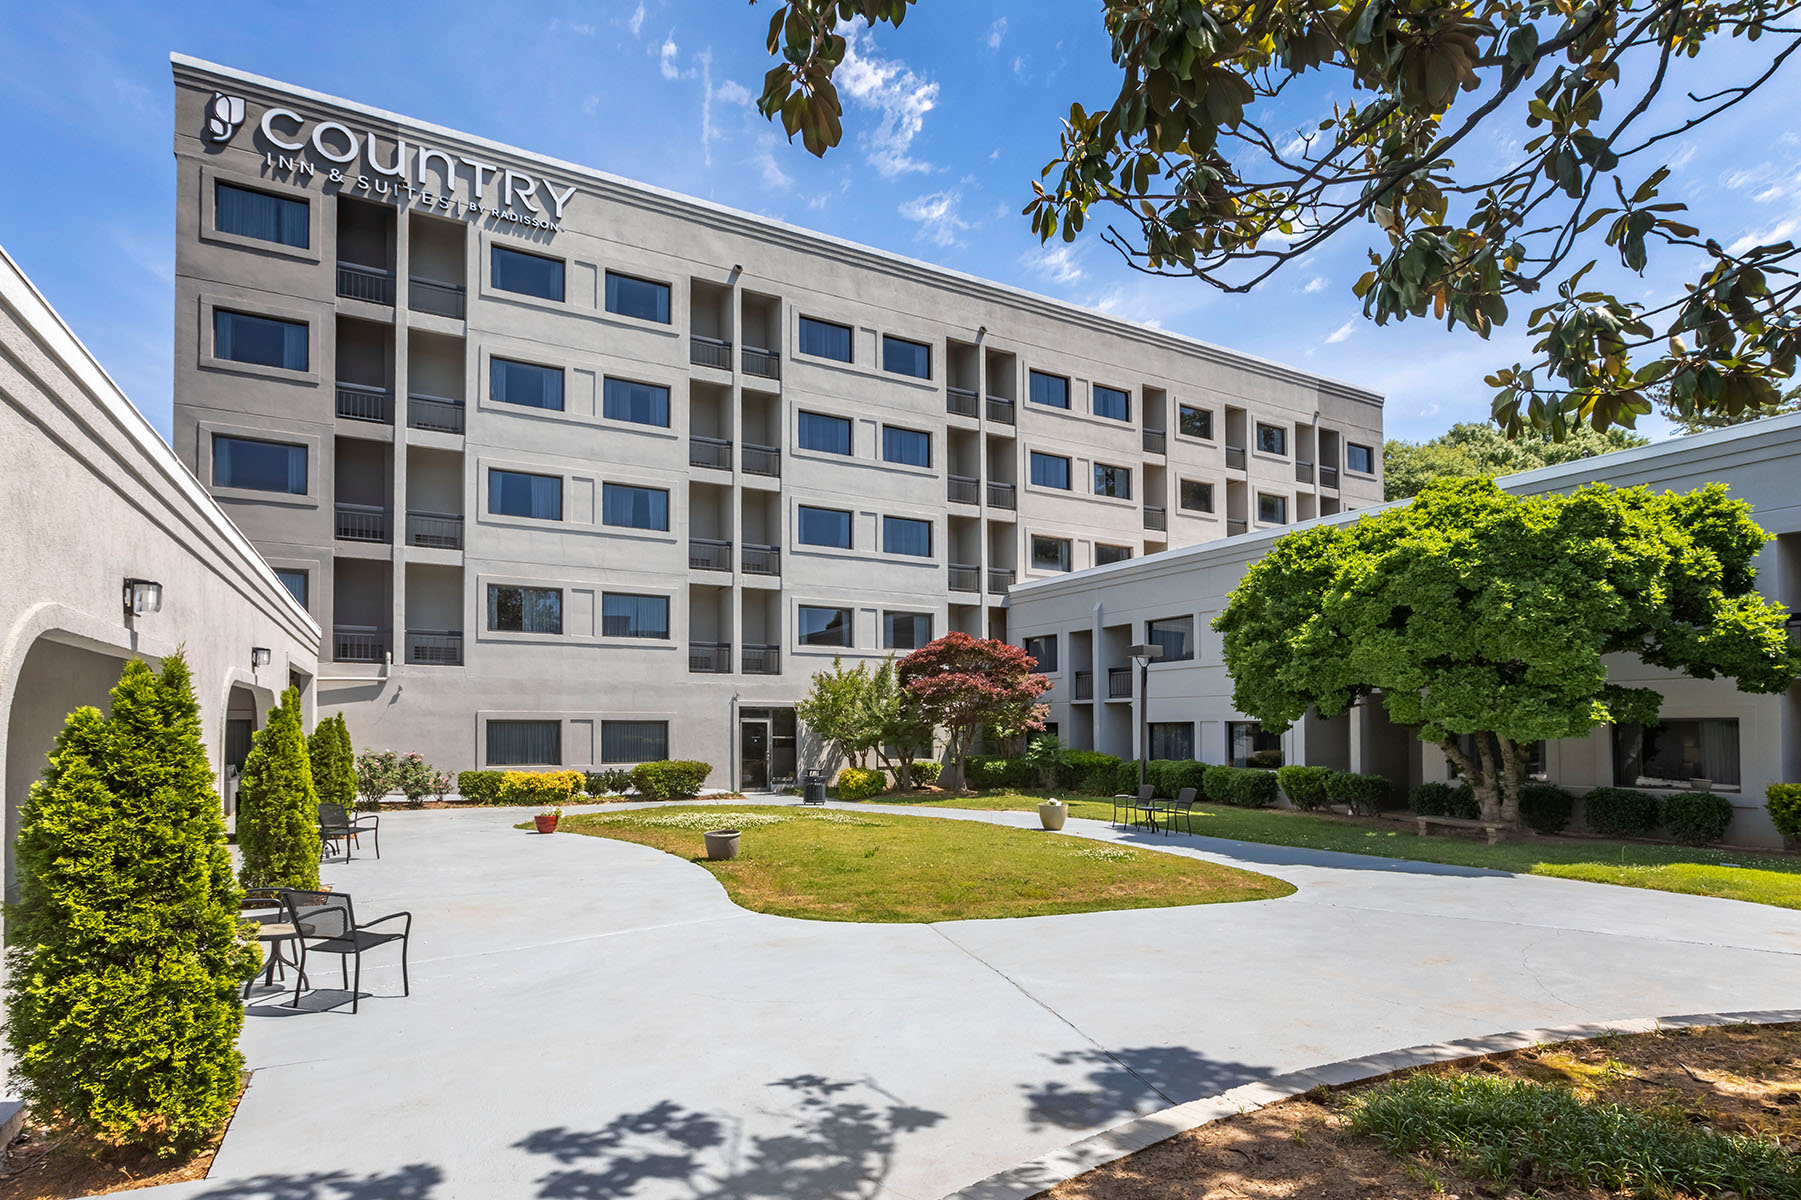 country inn and suites atlanta downtown south